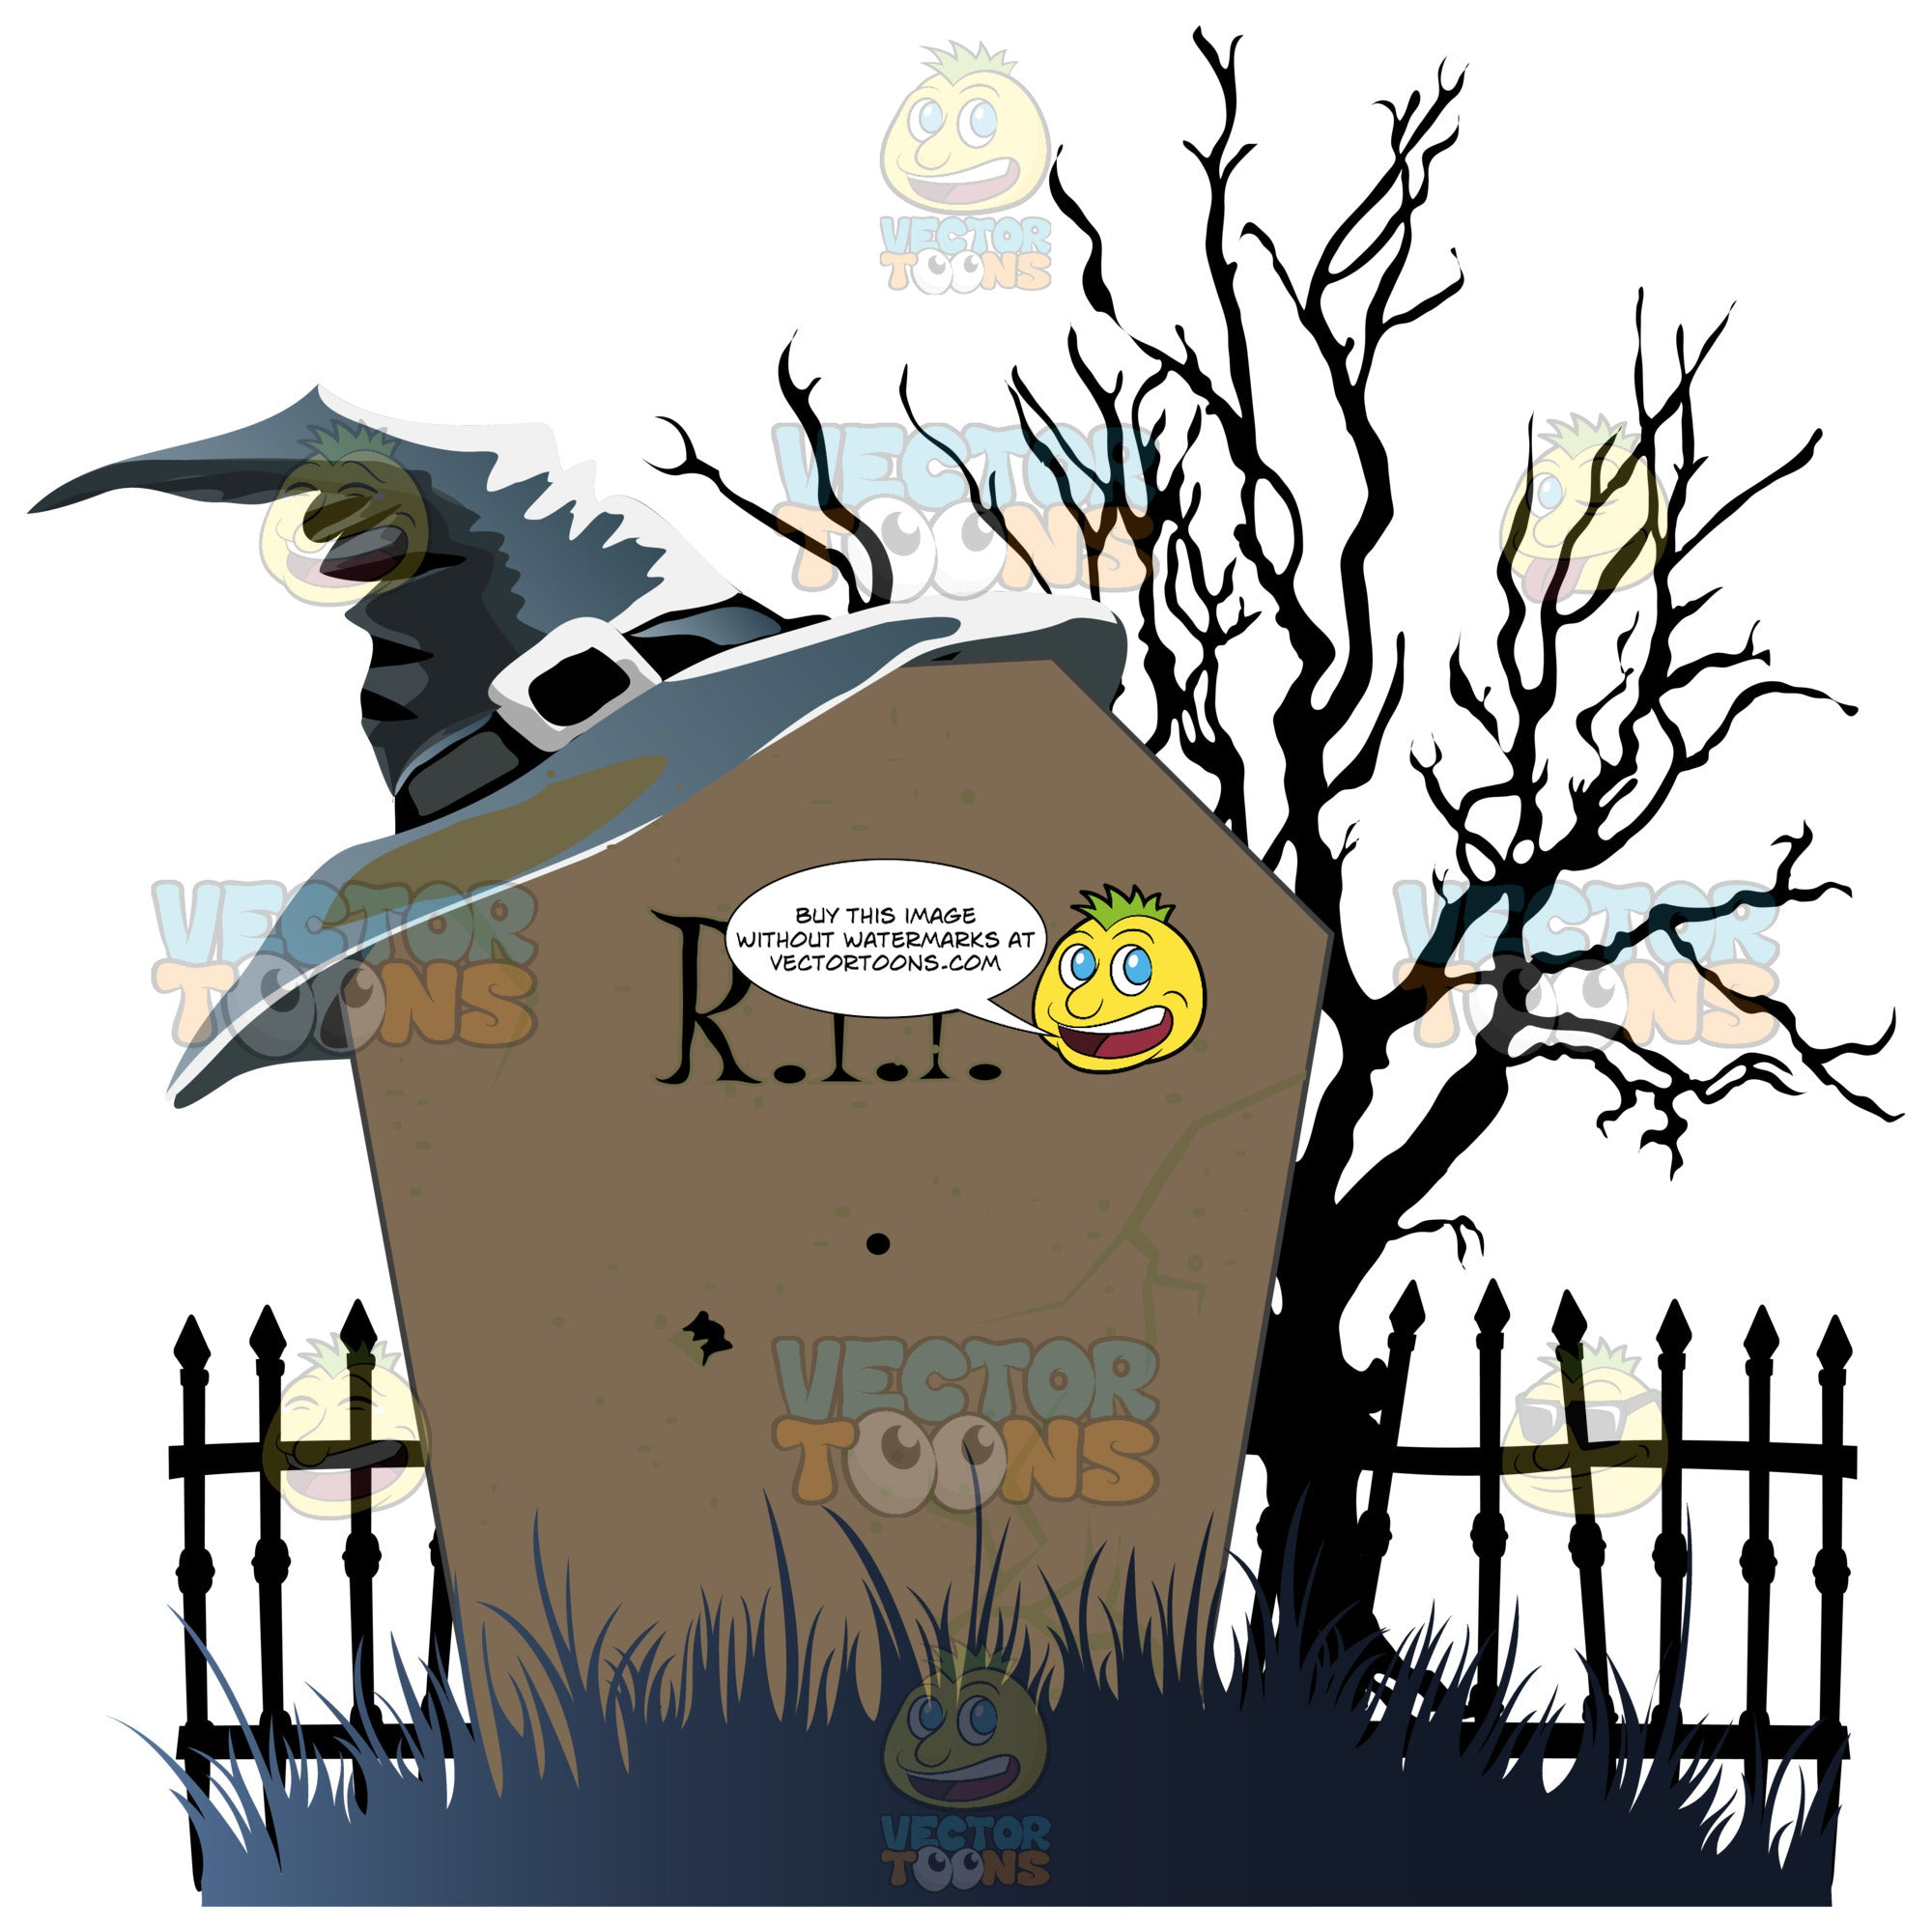 Night Time Halloween Scene – A Leafless Black Tree Stands By A Wrought Iron Cemetery Gate With An Old Fashioned Grave Stone Rip, With A Pointed Witch'S Hat On It